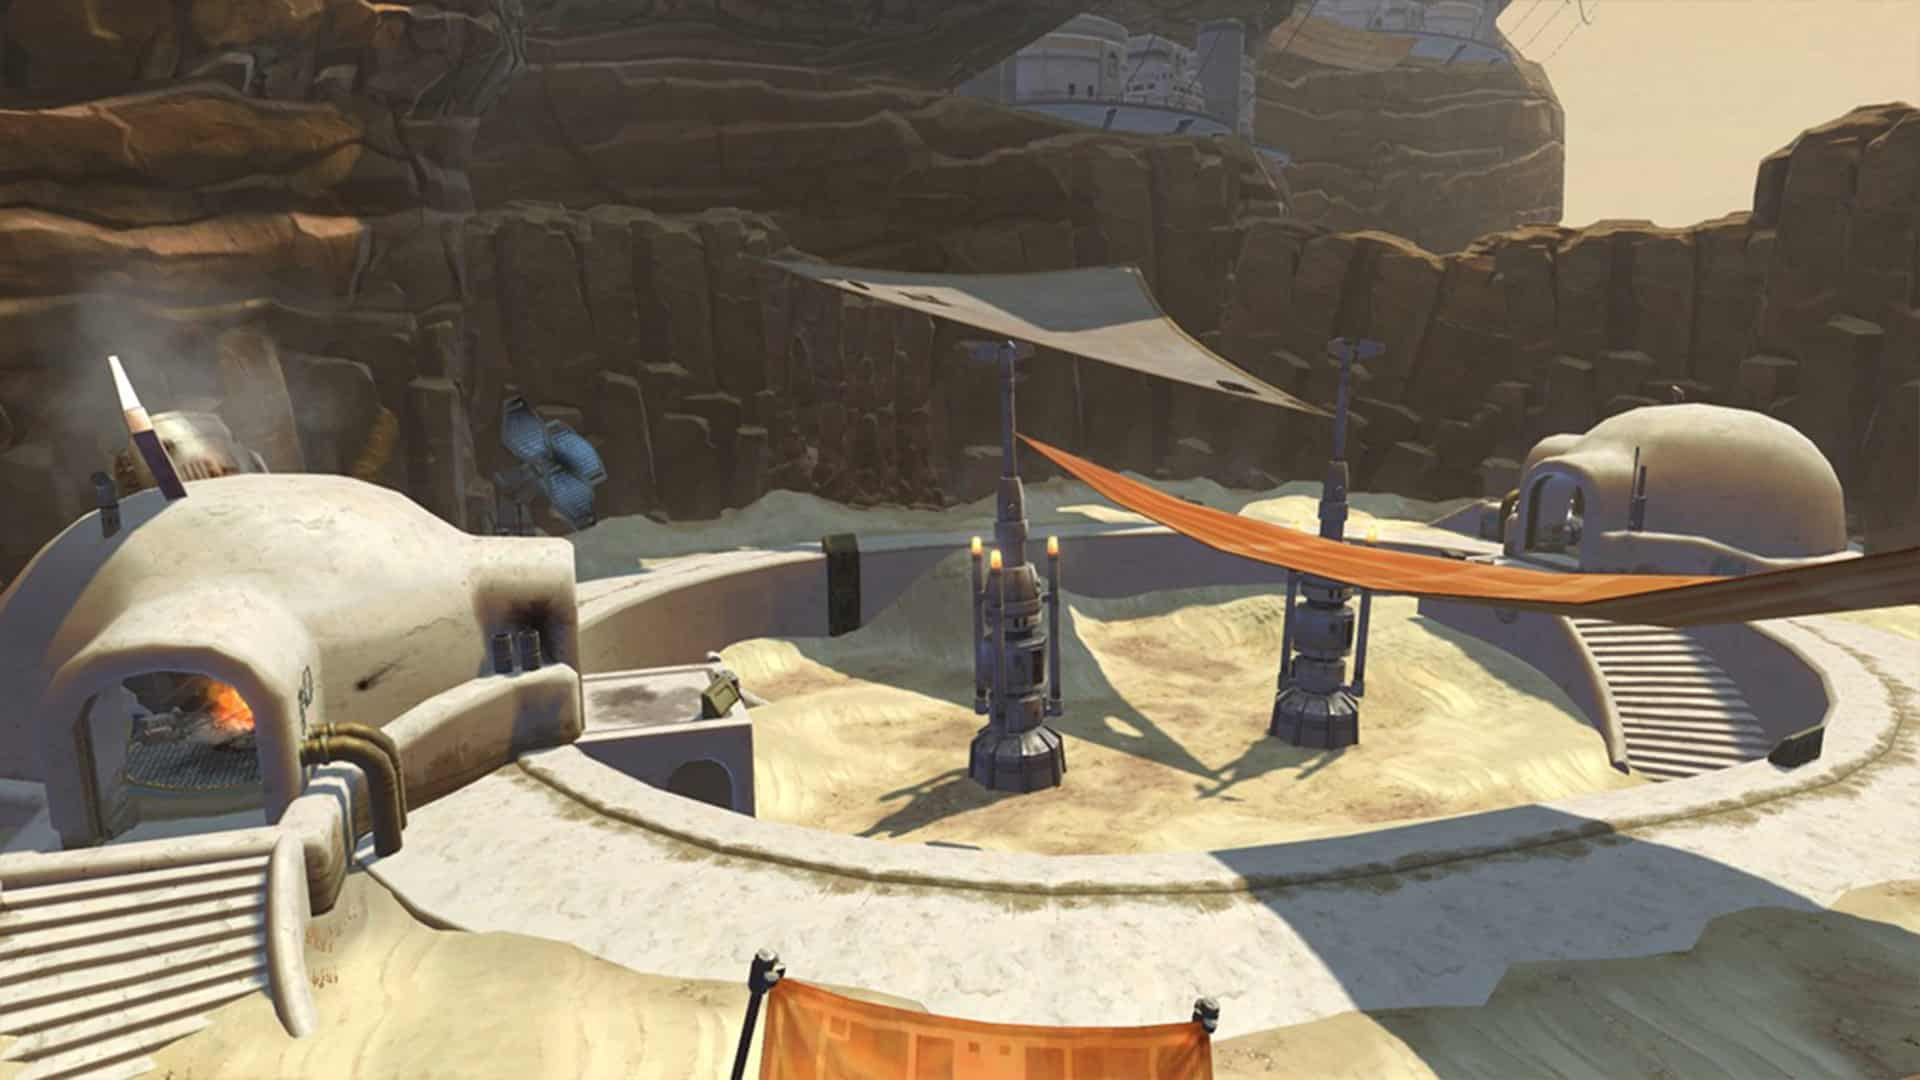 tatooine-arene-pvp-star-wars-the-old-republic-s-equiper-dans-l-extension-onslaught-swtor-guide-aide-astuce-2